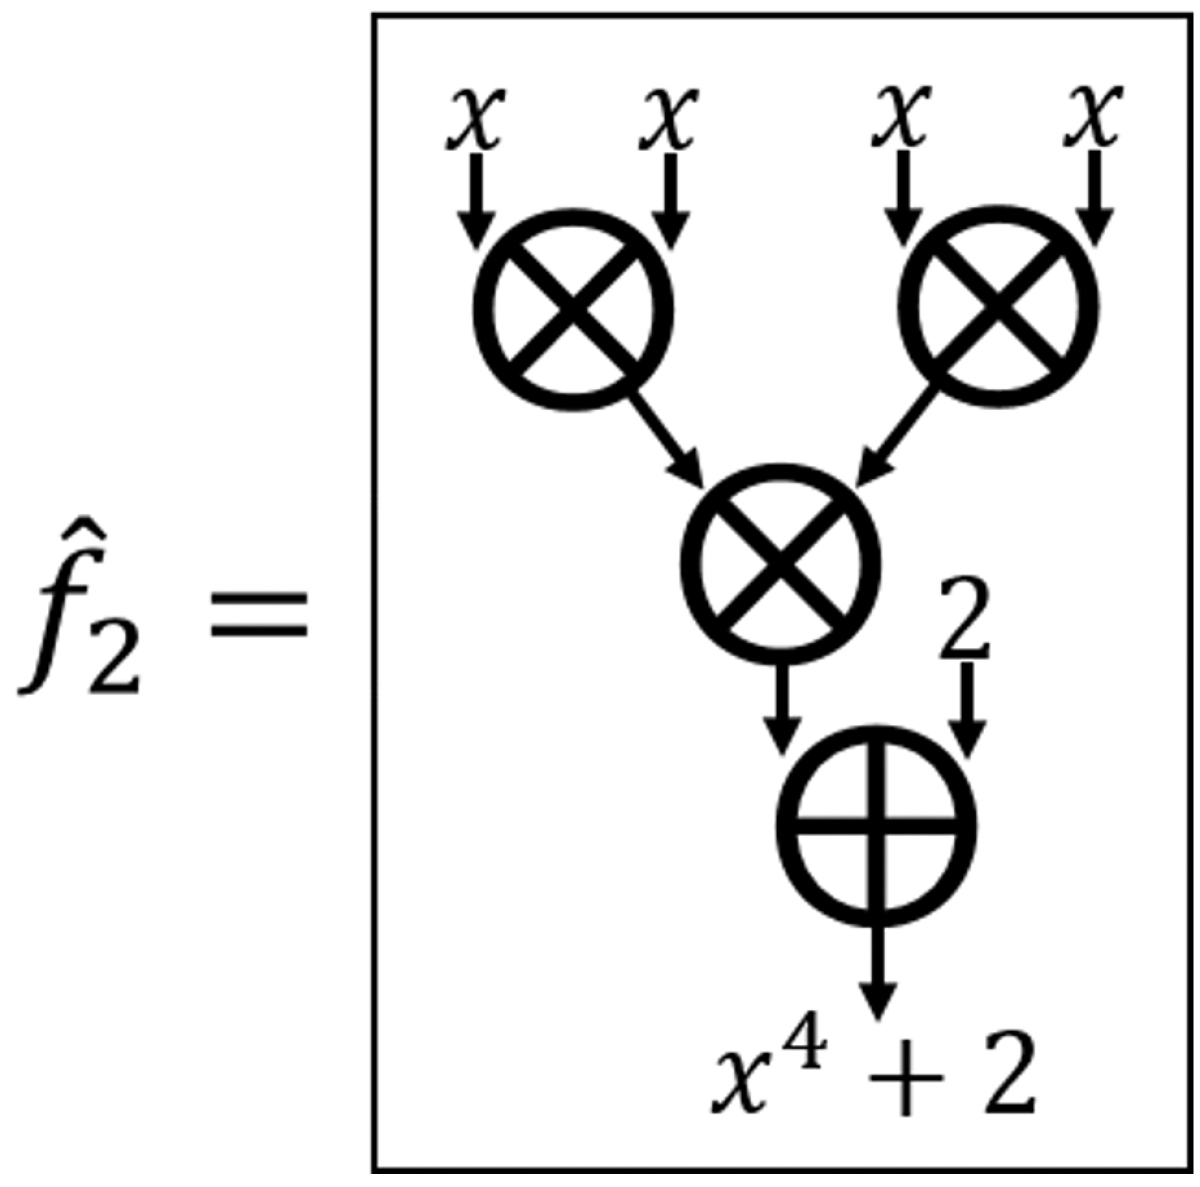 Diagram of a circuit with a multiplicative depth of two